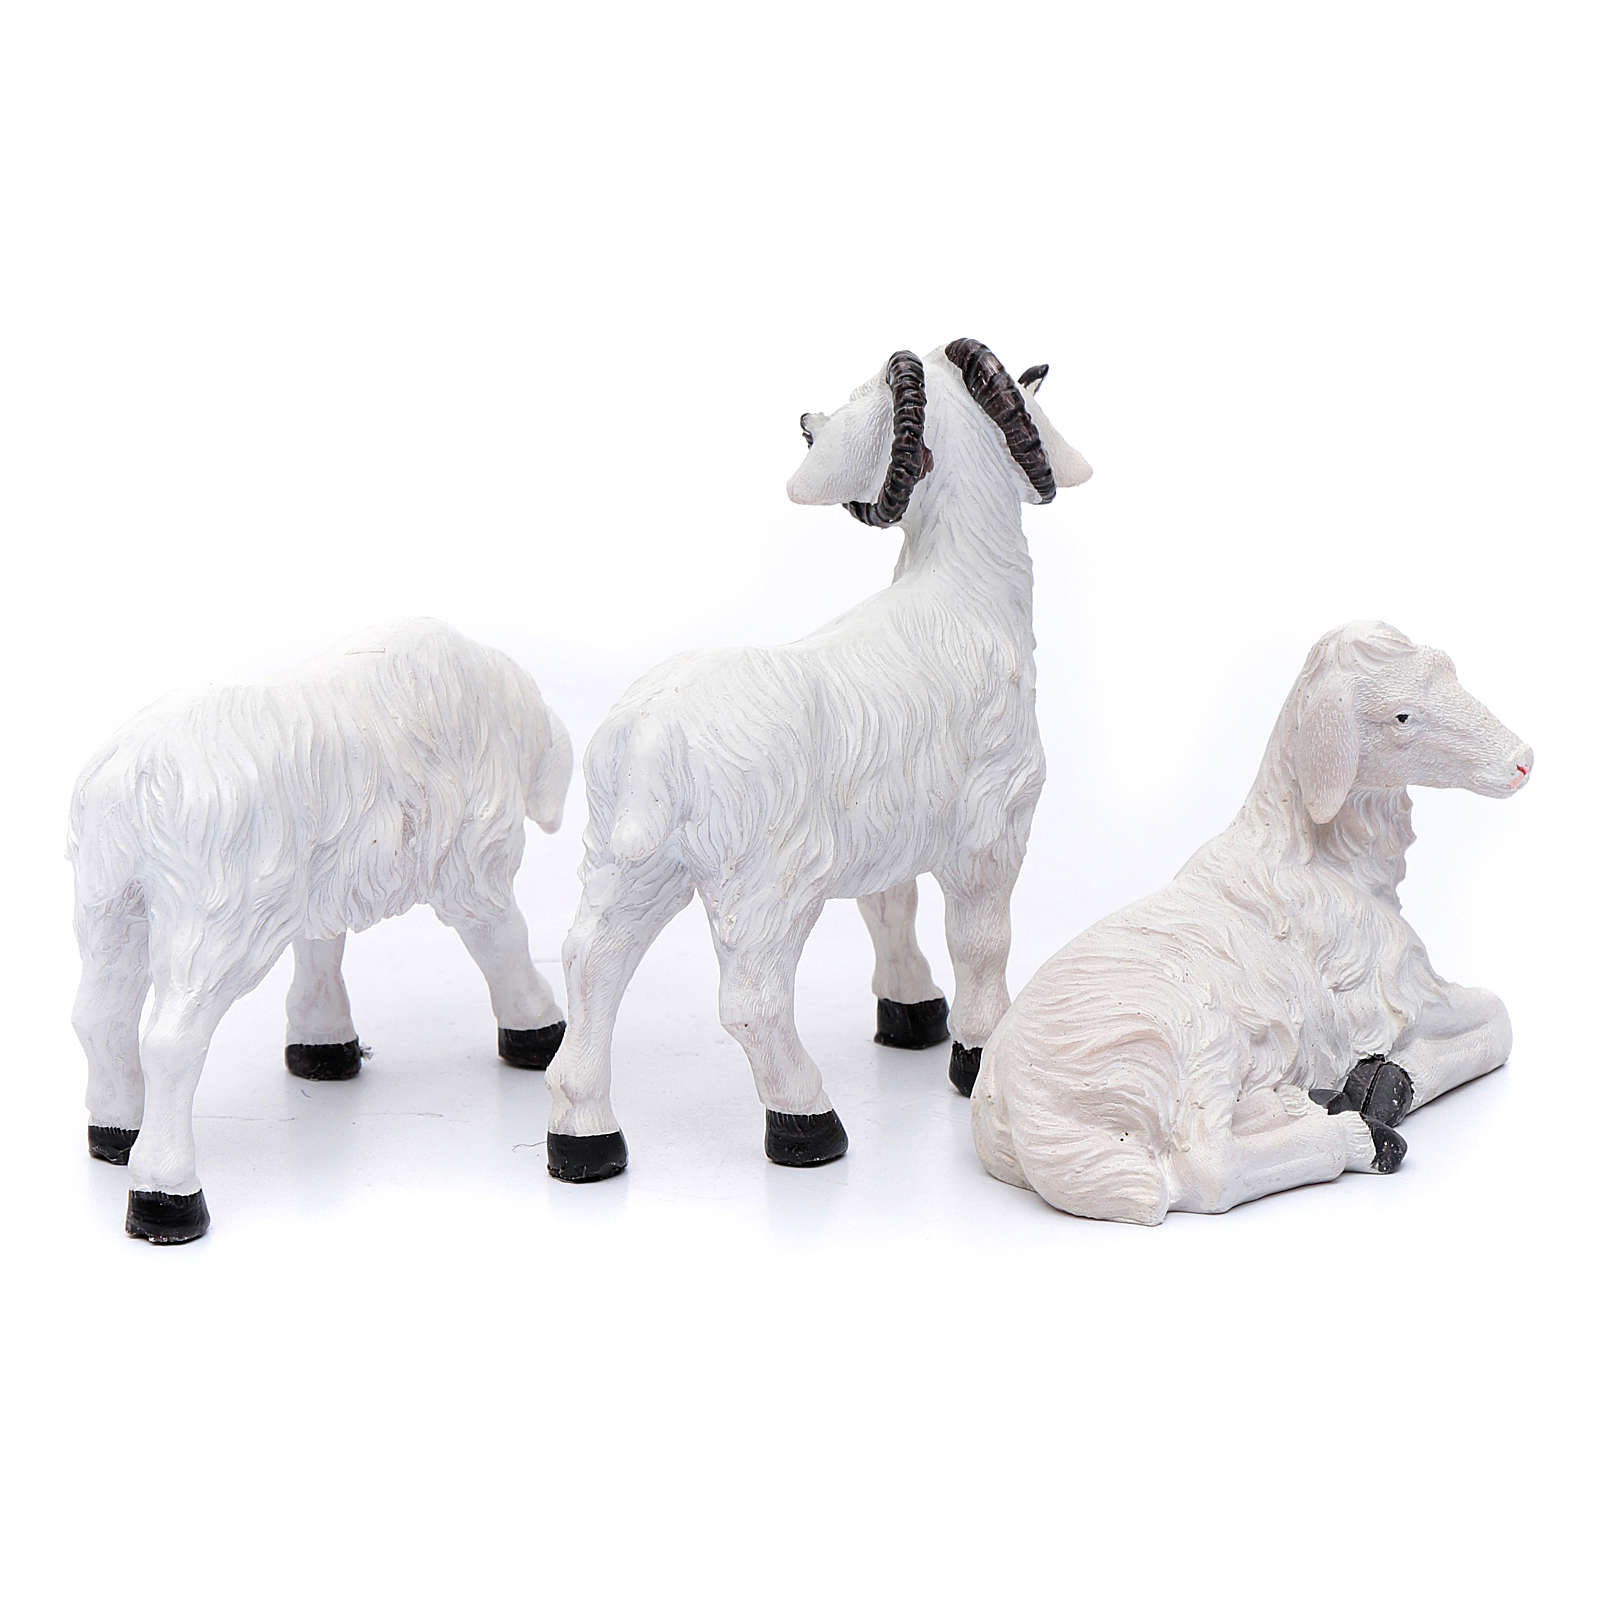 Sheep for 20 cm crib set of 3 pieces 3